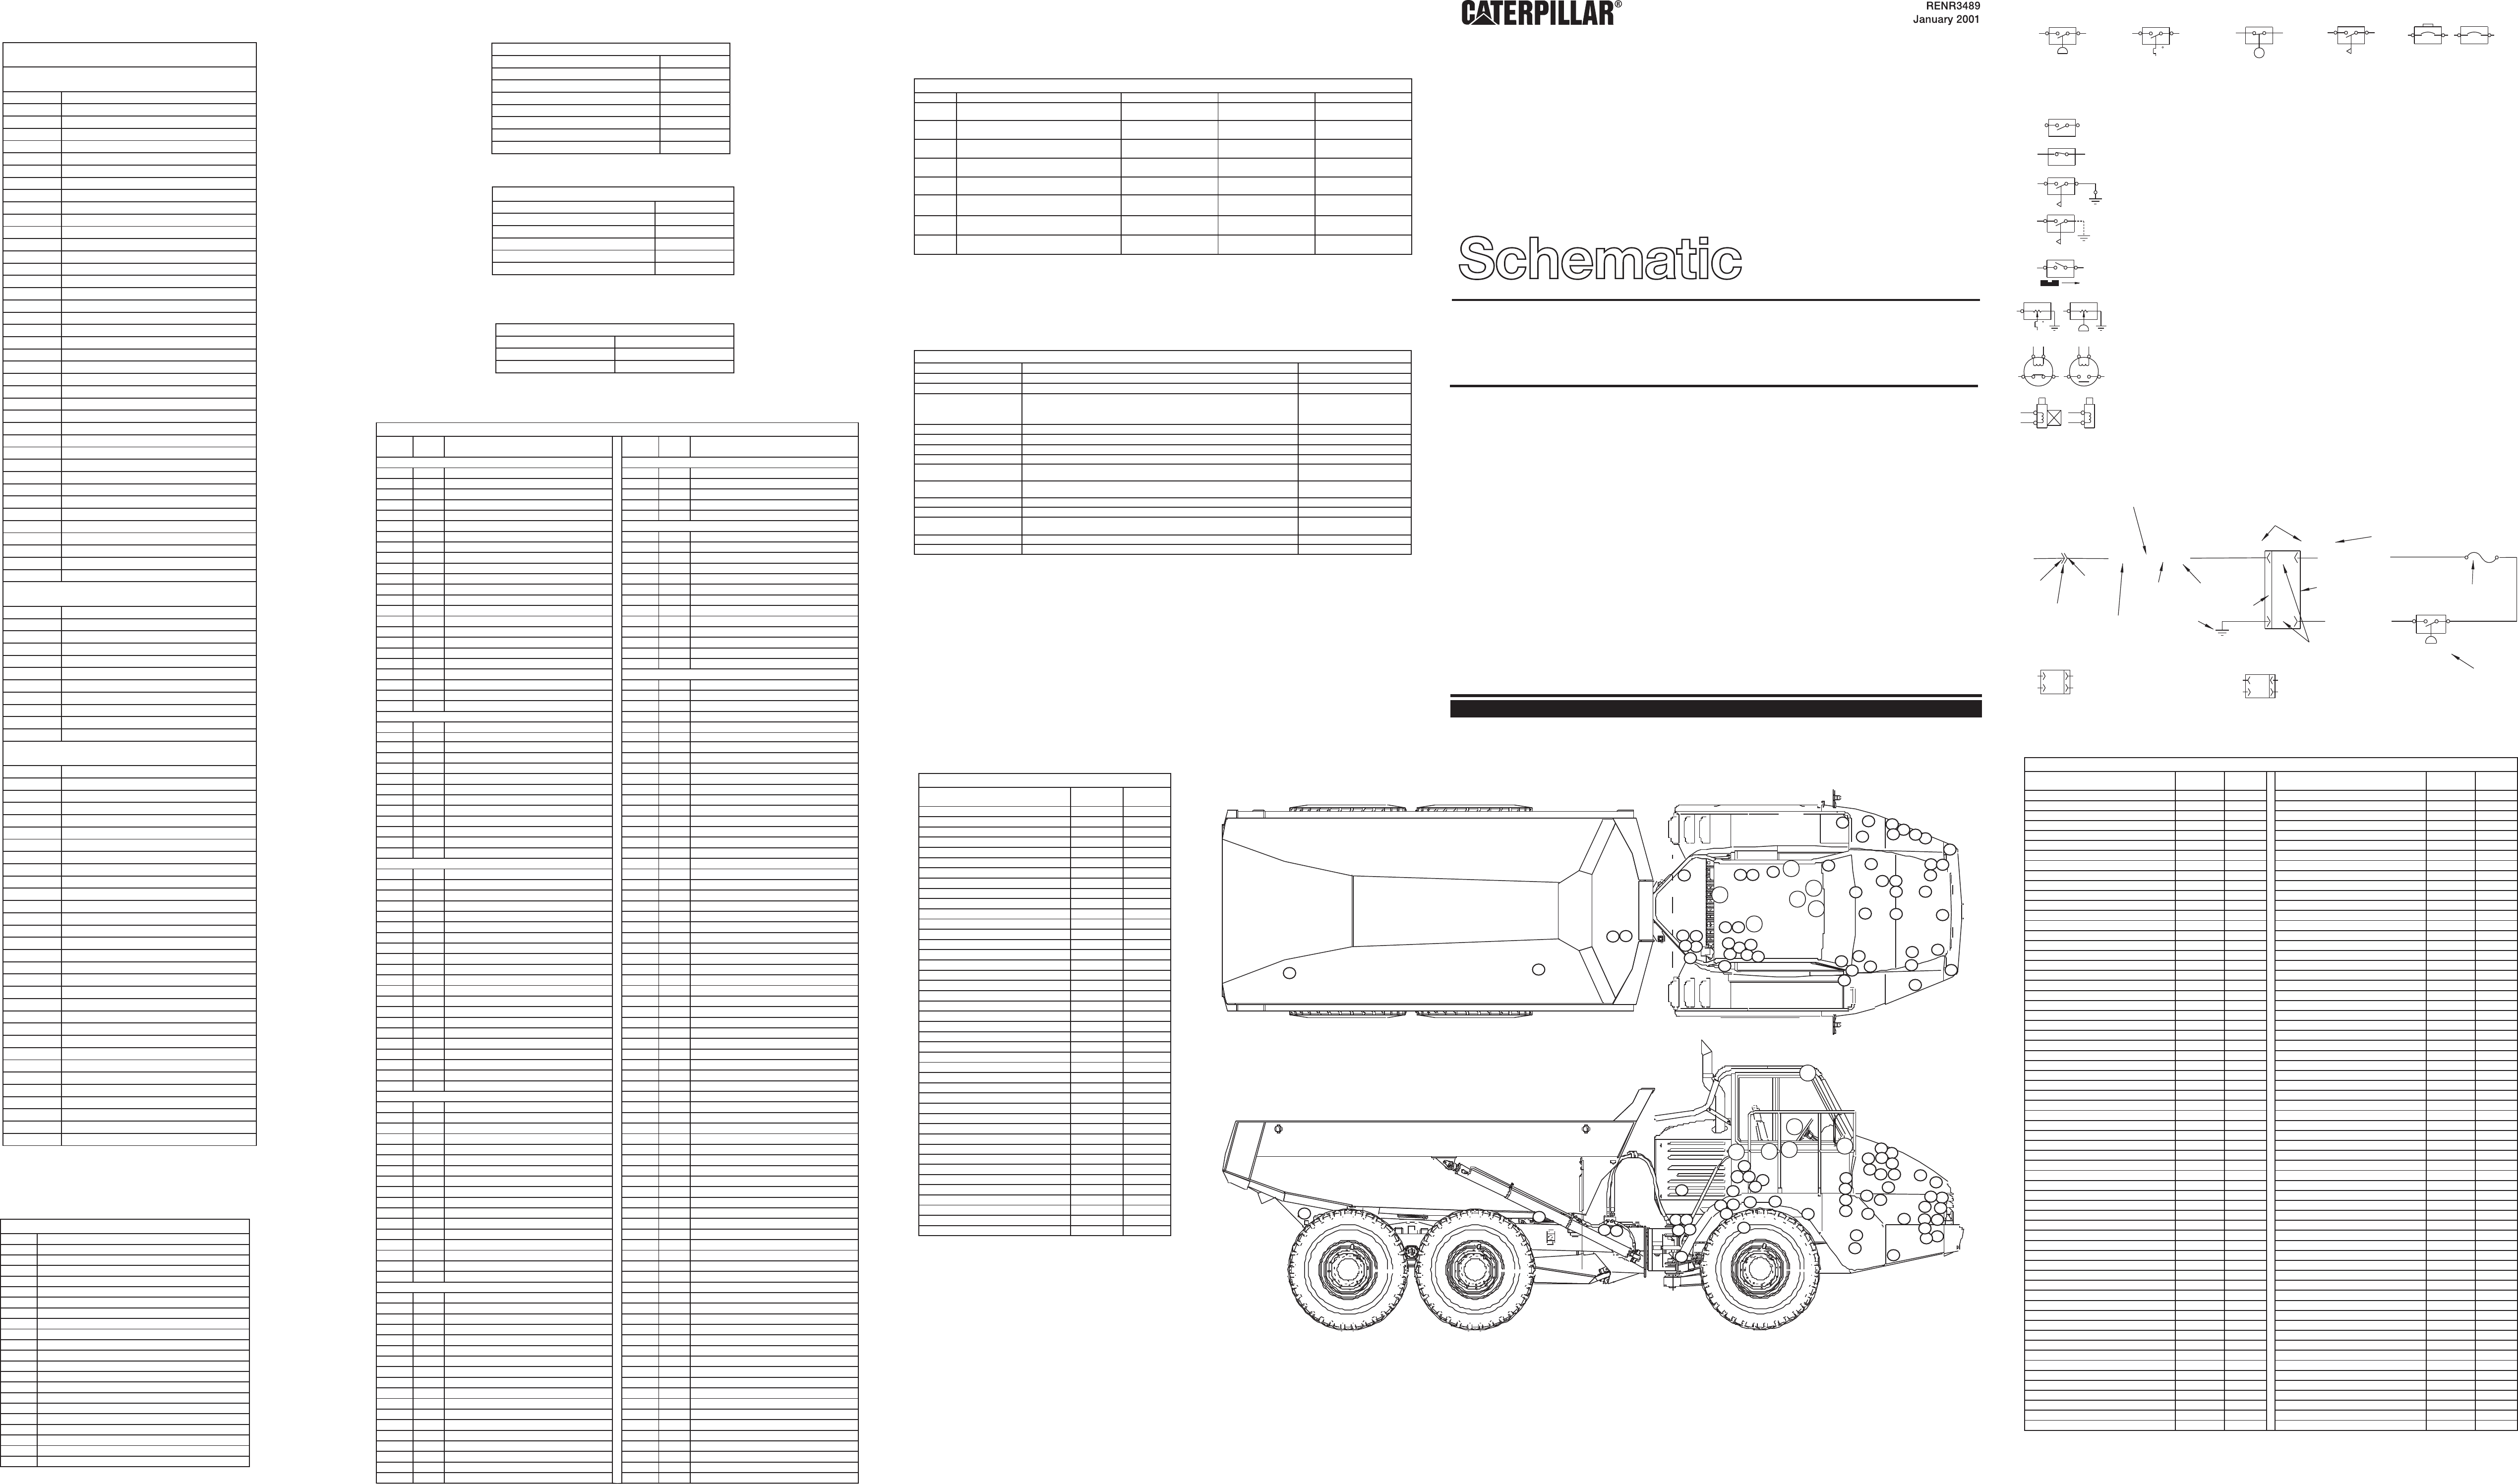 725 730 Articulated Trucks Electrical System Schematic Cat Machines Electrical Schematic